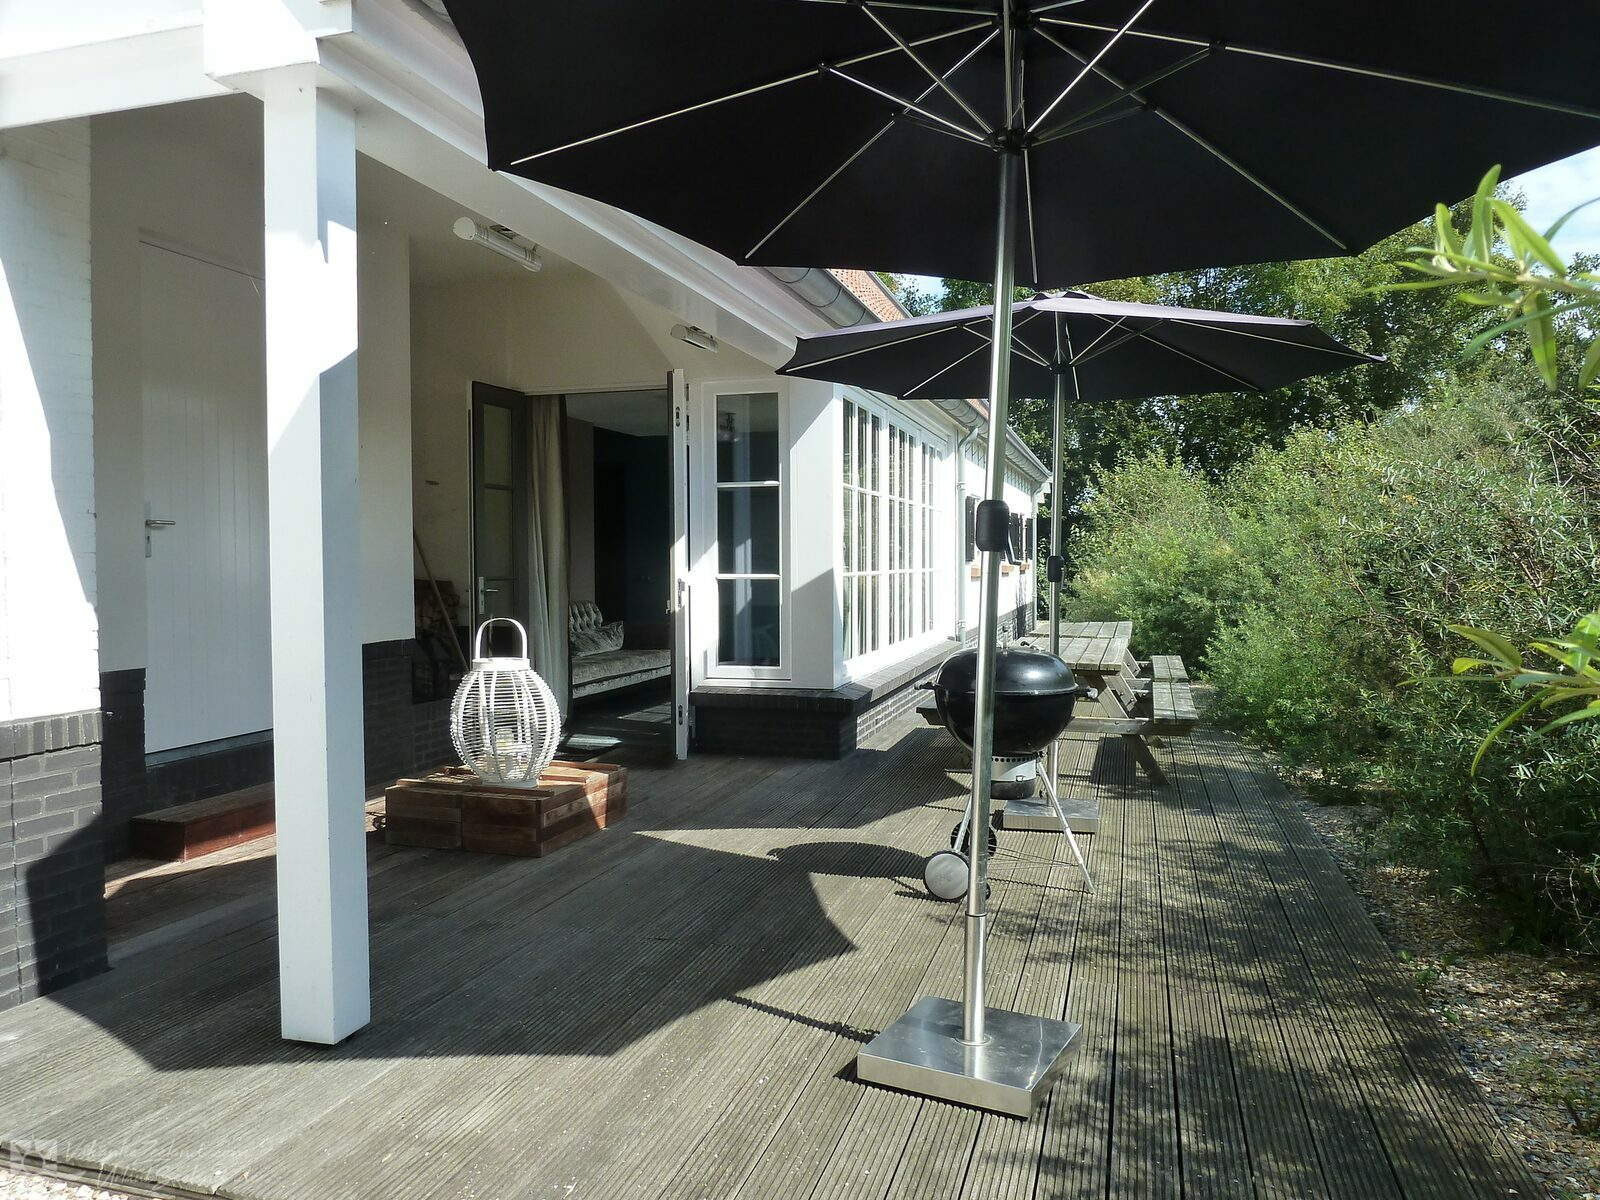 VZ917 Group accommodation in Koudekerke Dishoek